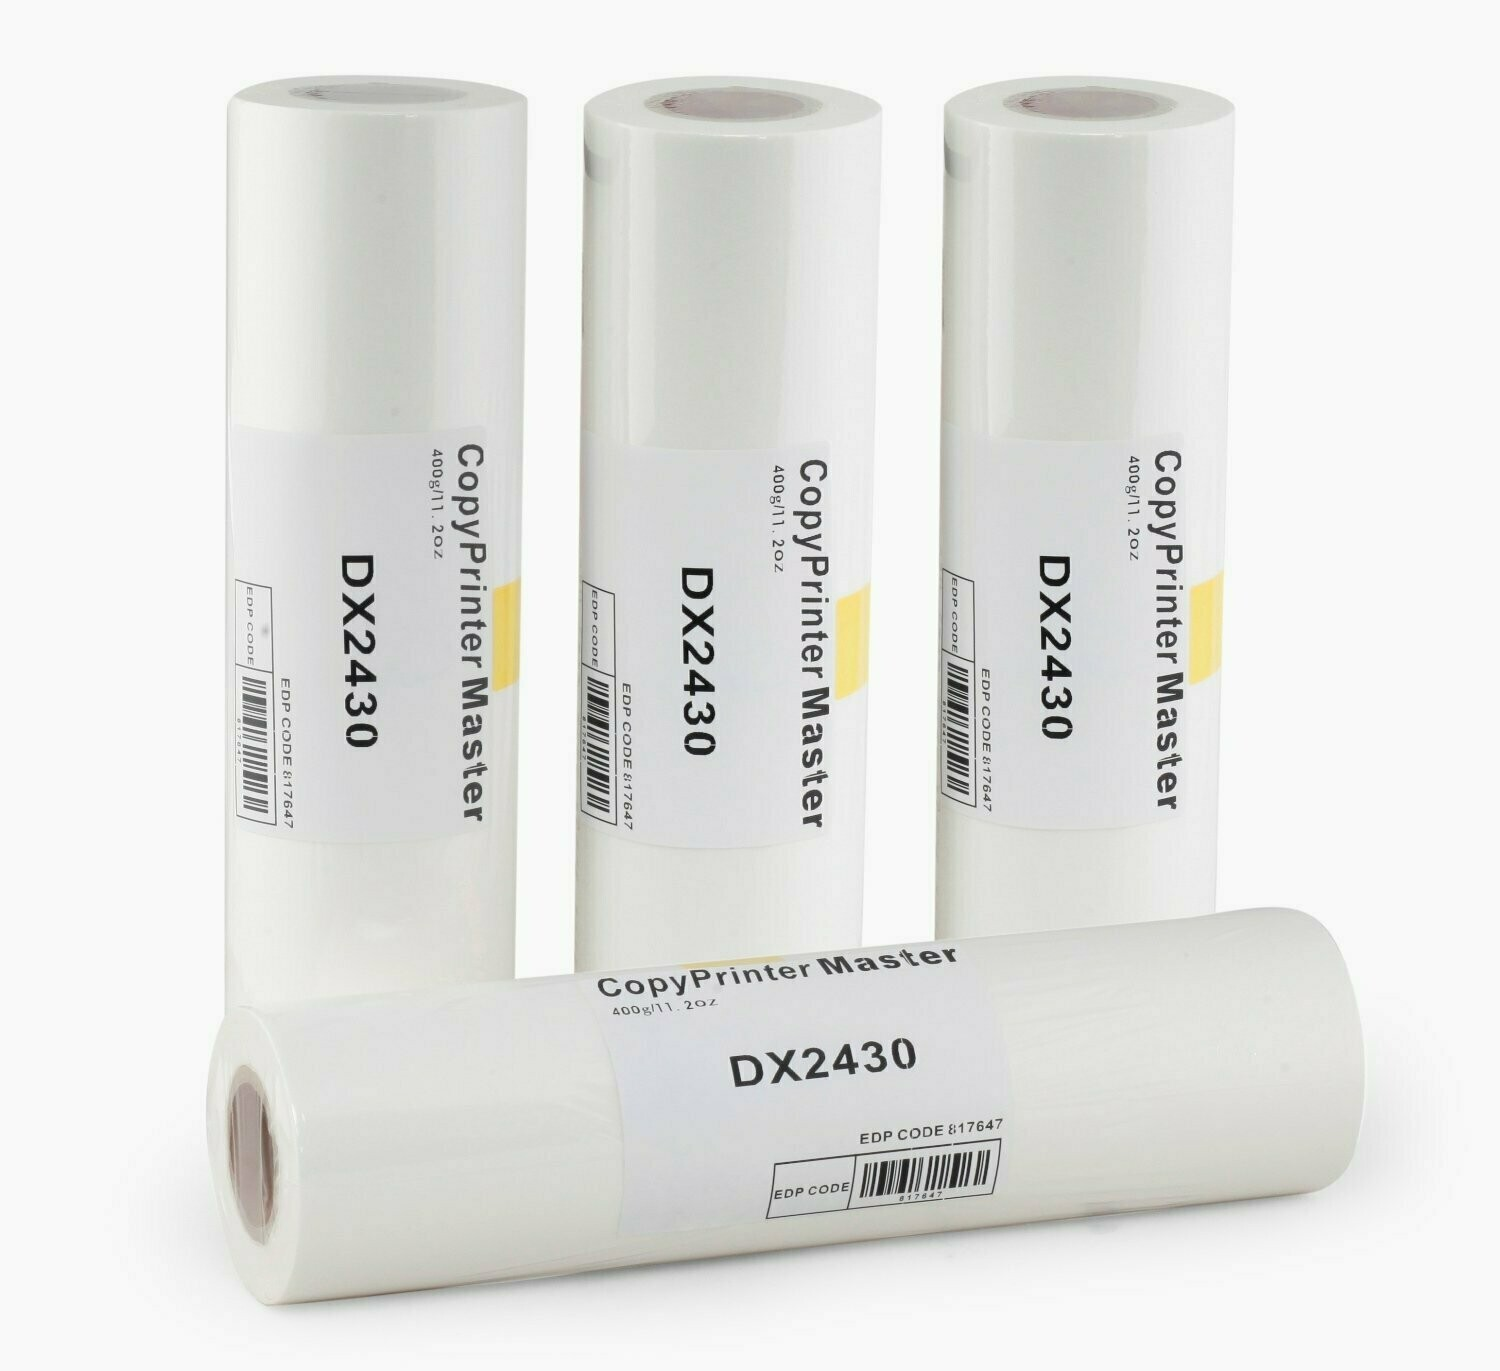 Copy Printer DX 2430 Master Roll, Pack of 4